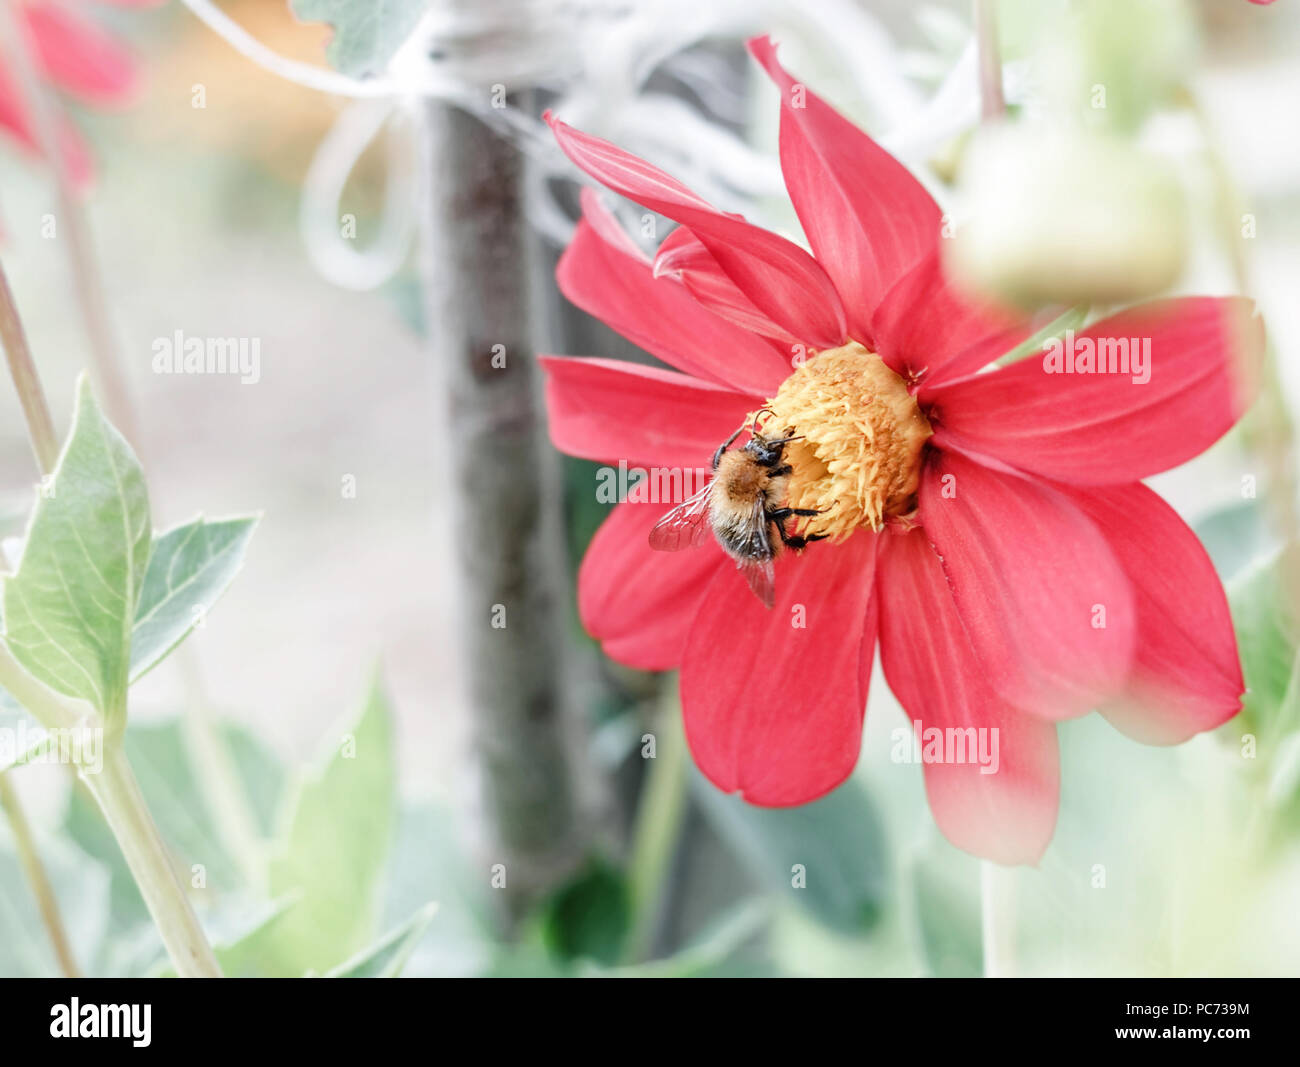 Bee on red flower dahlia at summer garden - Stock Image